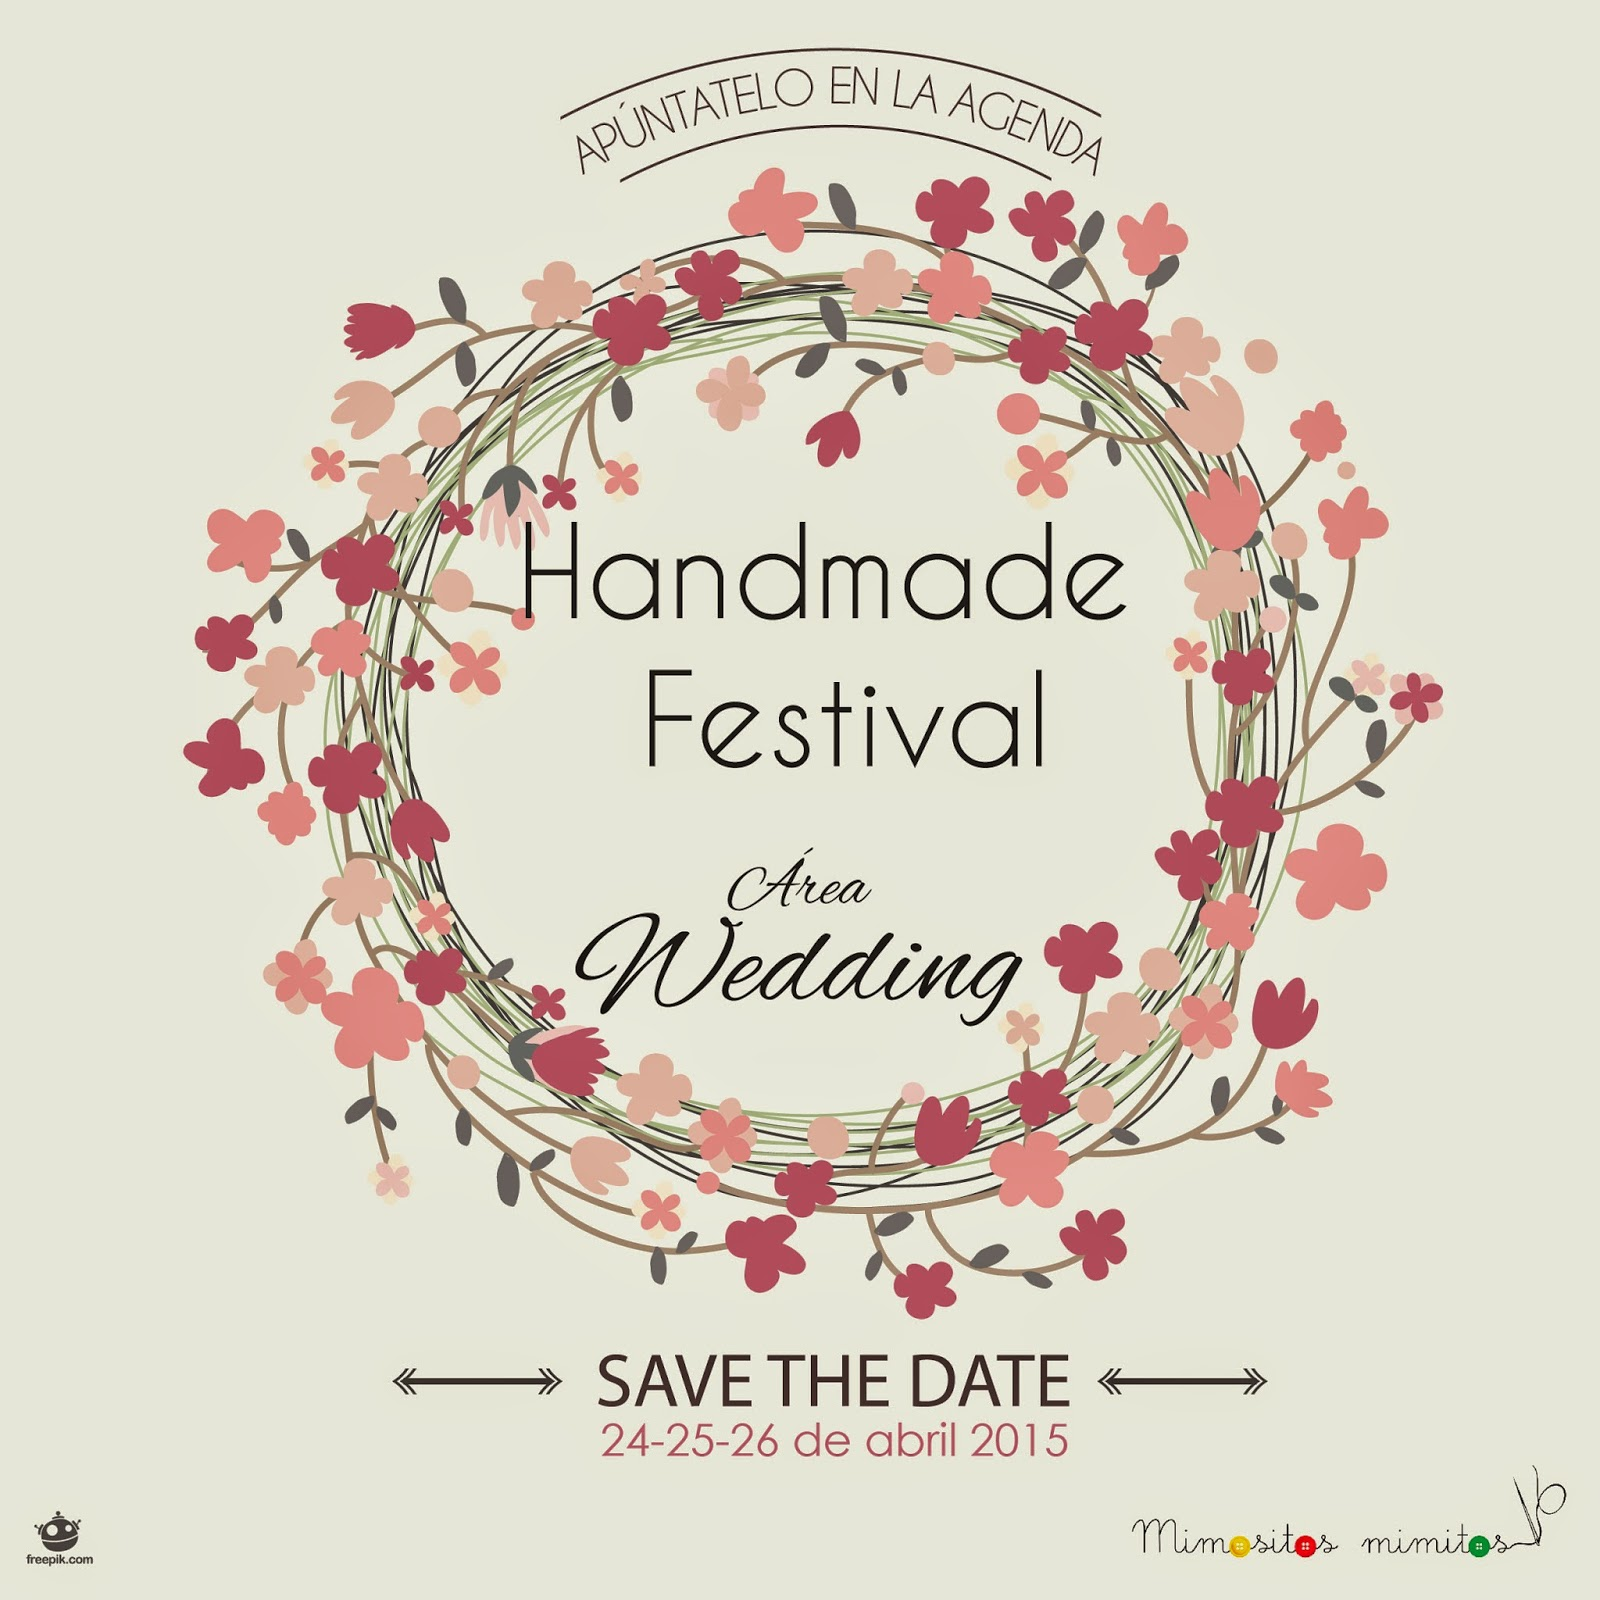 Handmade Festival 2015 area wedding craft como preparar boda original-01